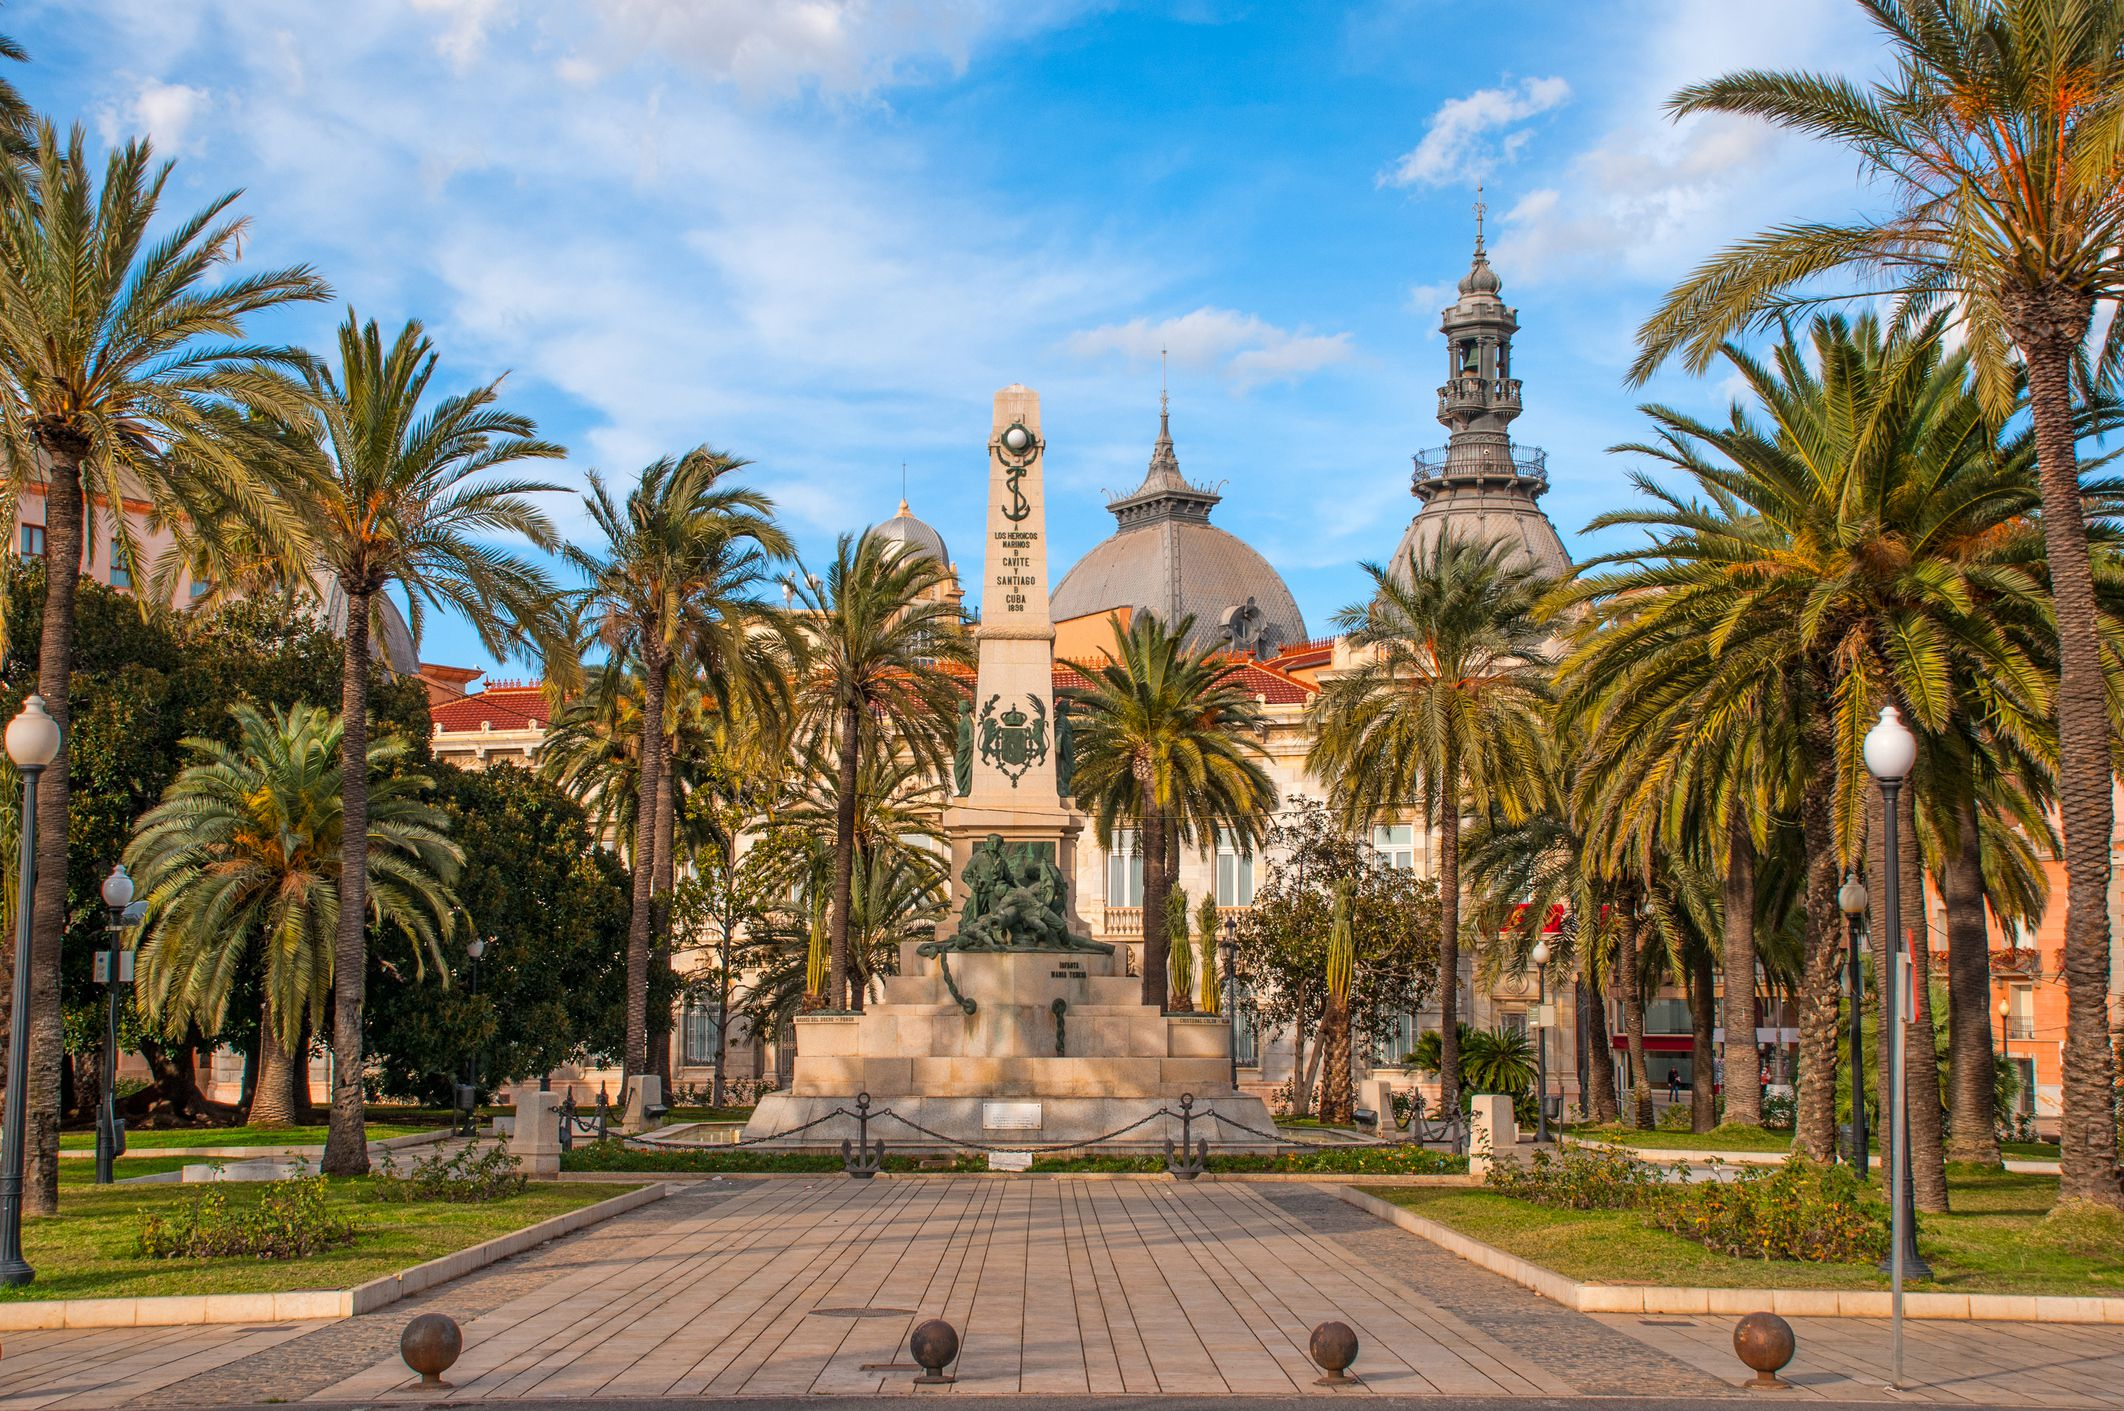 S And B Filters >> 10 Best Things to Do in Cartagena, Spain